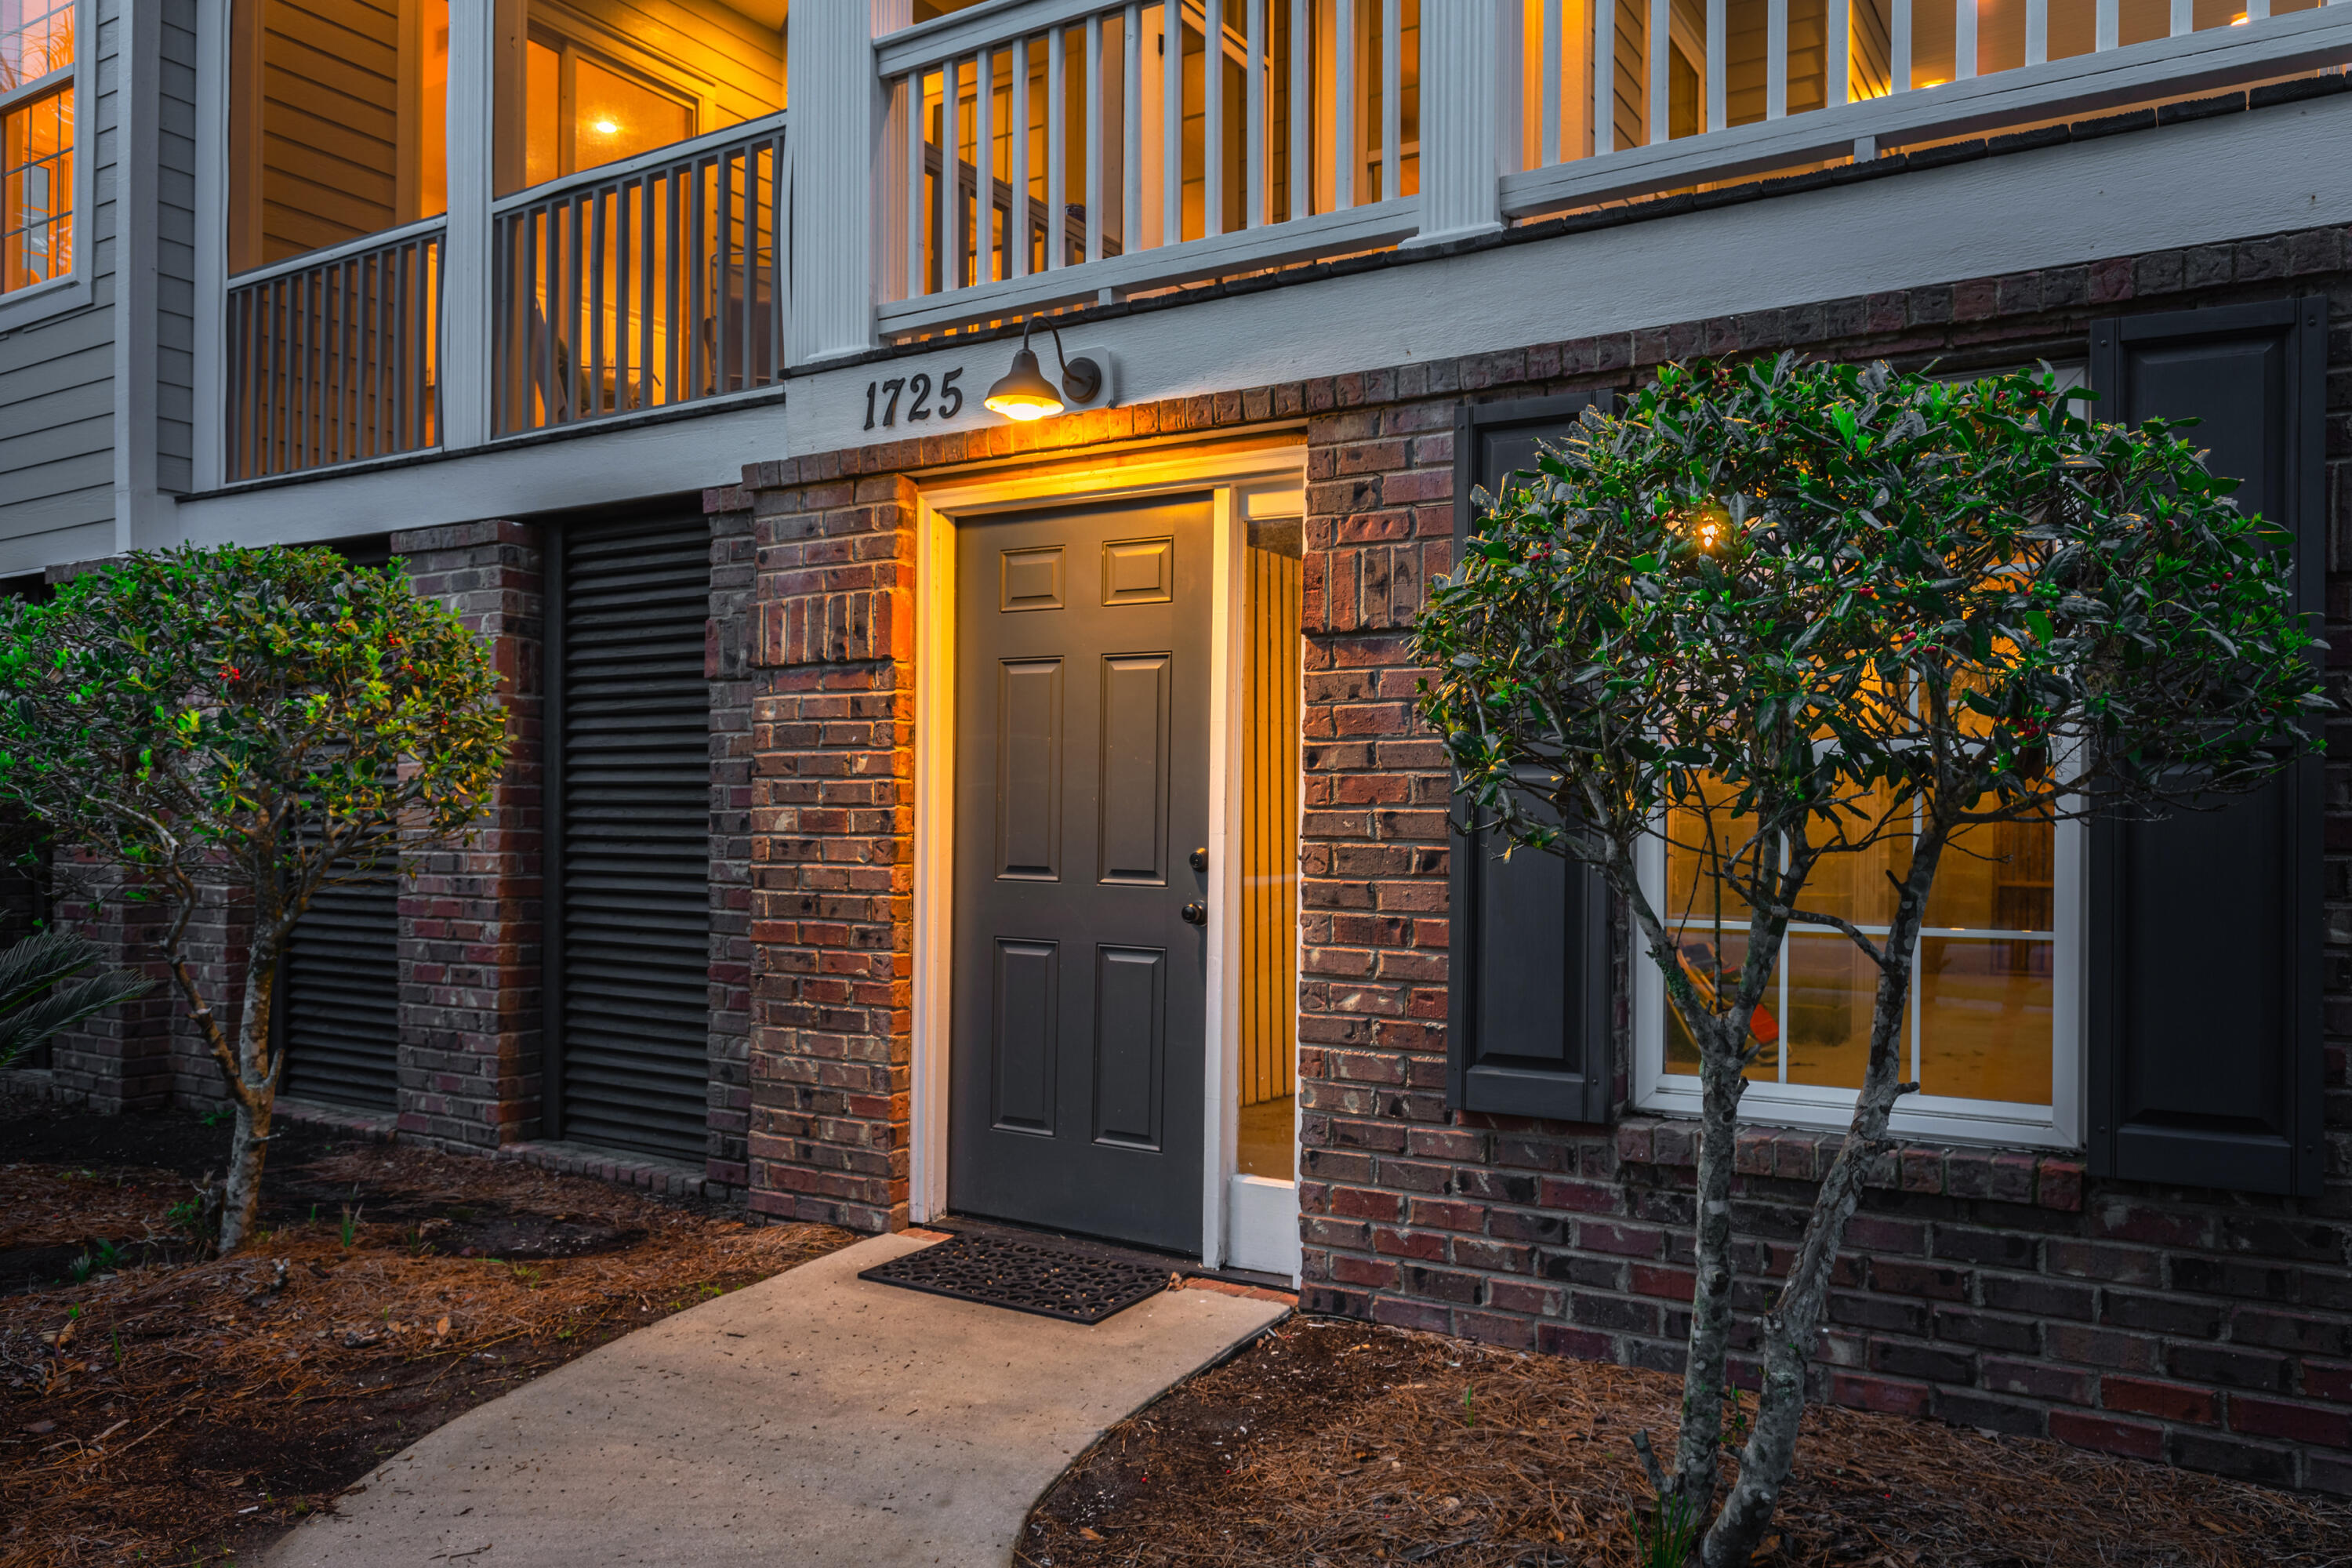 Rivertowne Country Club Homes For Sale - 1725 Rivertowne Country Club, Mount Pleasant, SC - 54